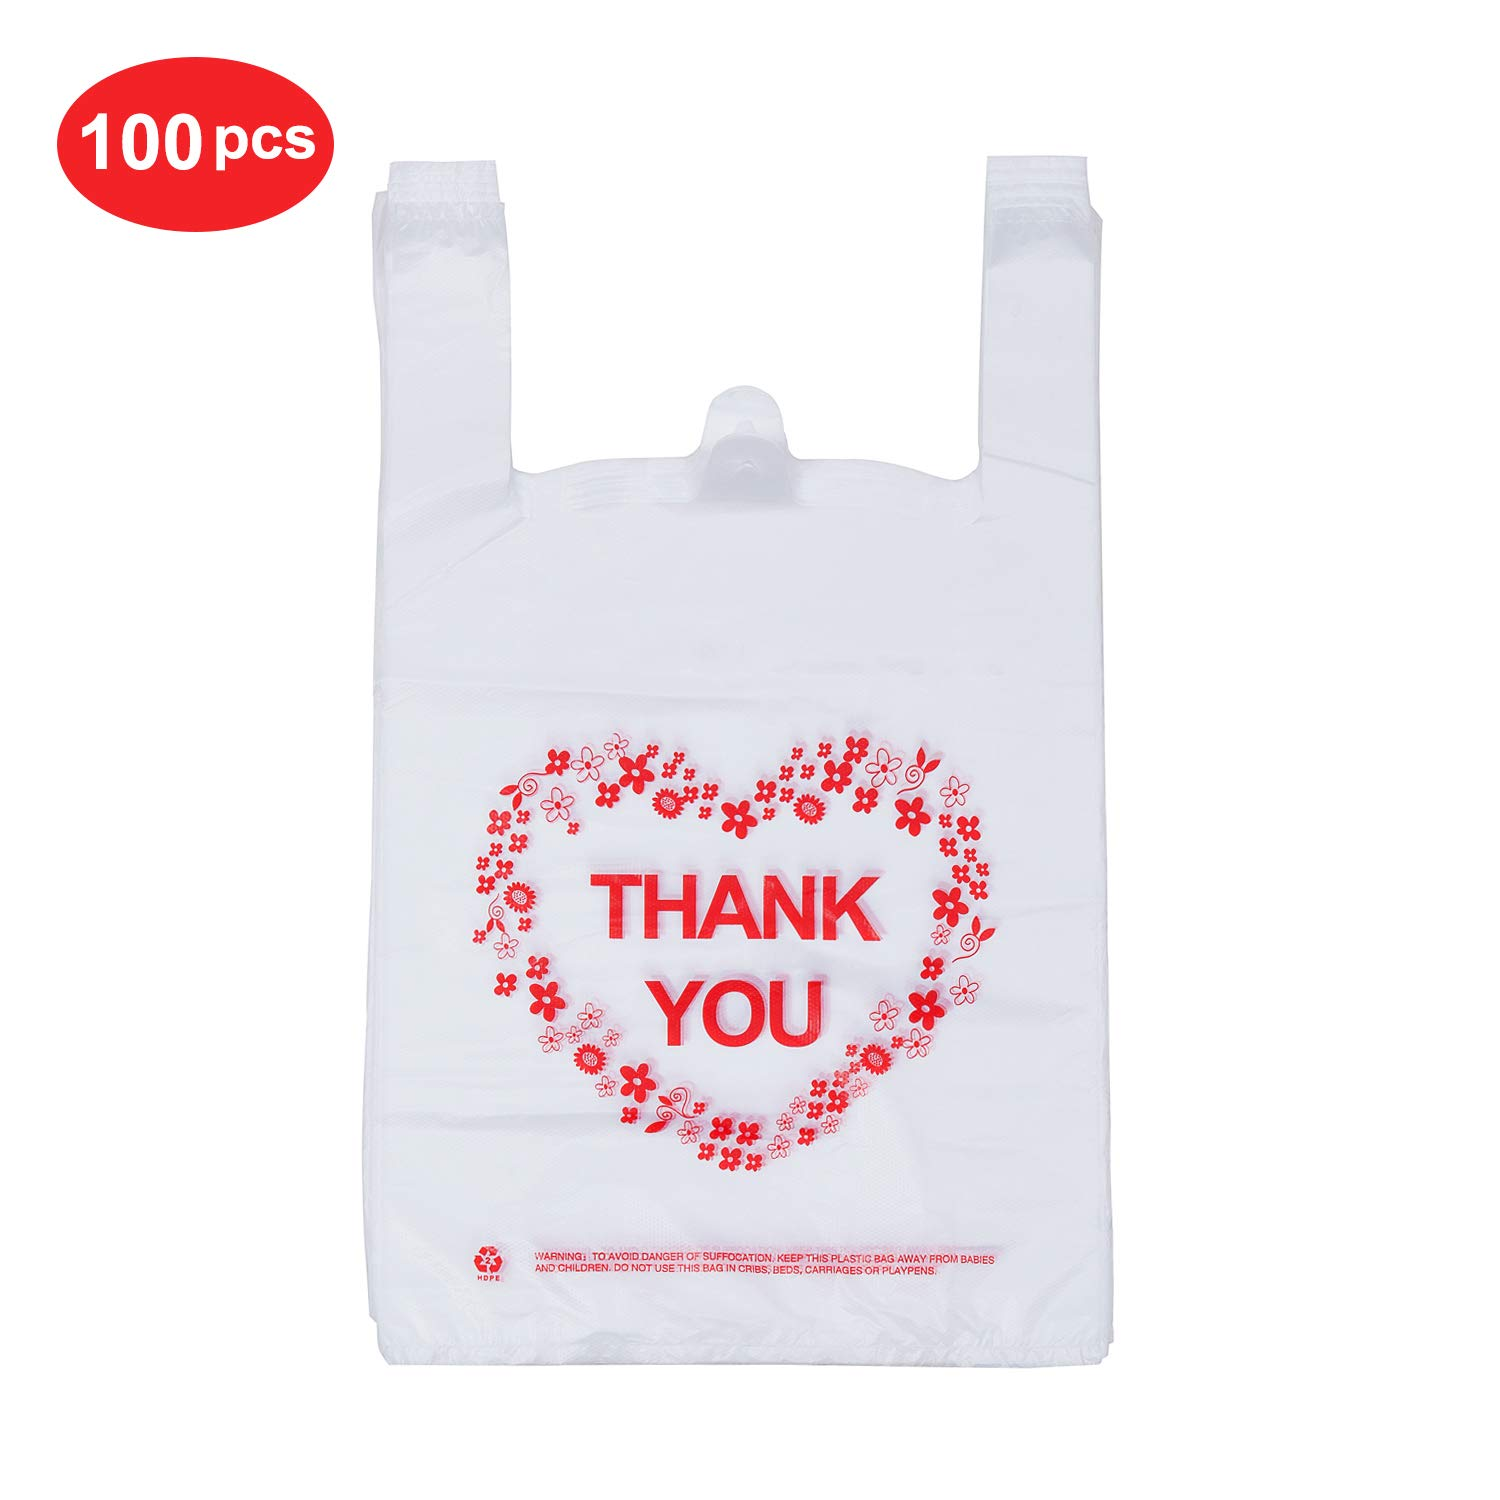 LazyMe Thank You T Shirt Bags Plastic Grocery Bags White Sturdy Handled Merchandise Bags,Standard Supermarket Size, 12 x 20 inch (100 pcs)